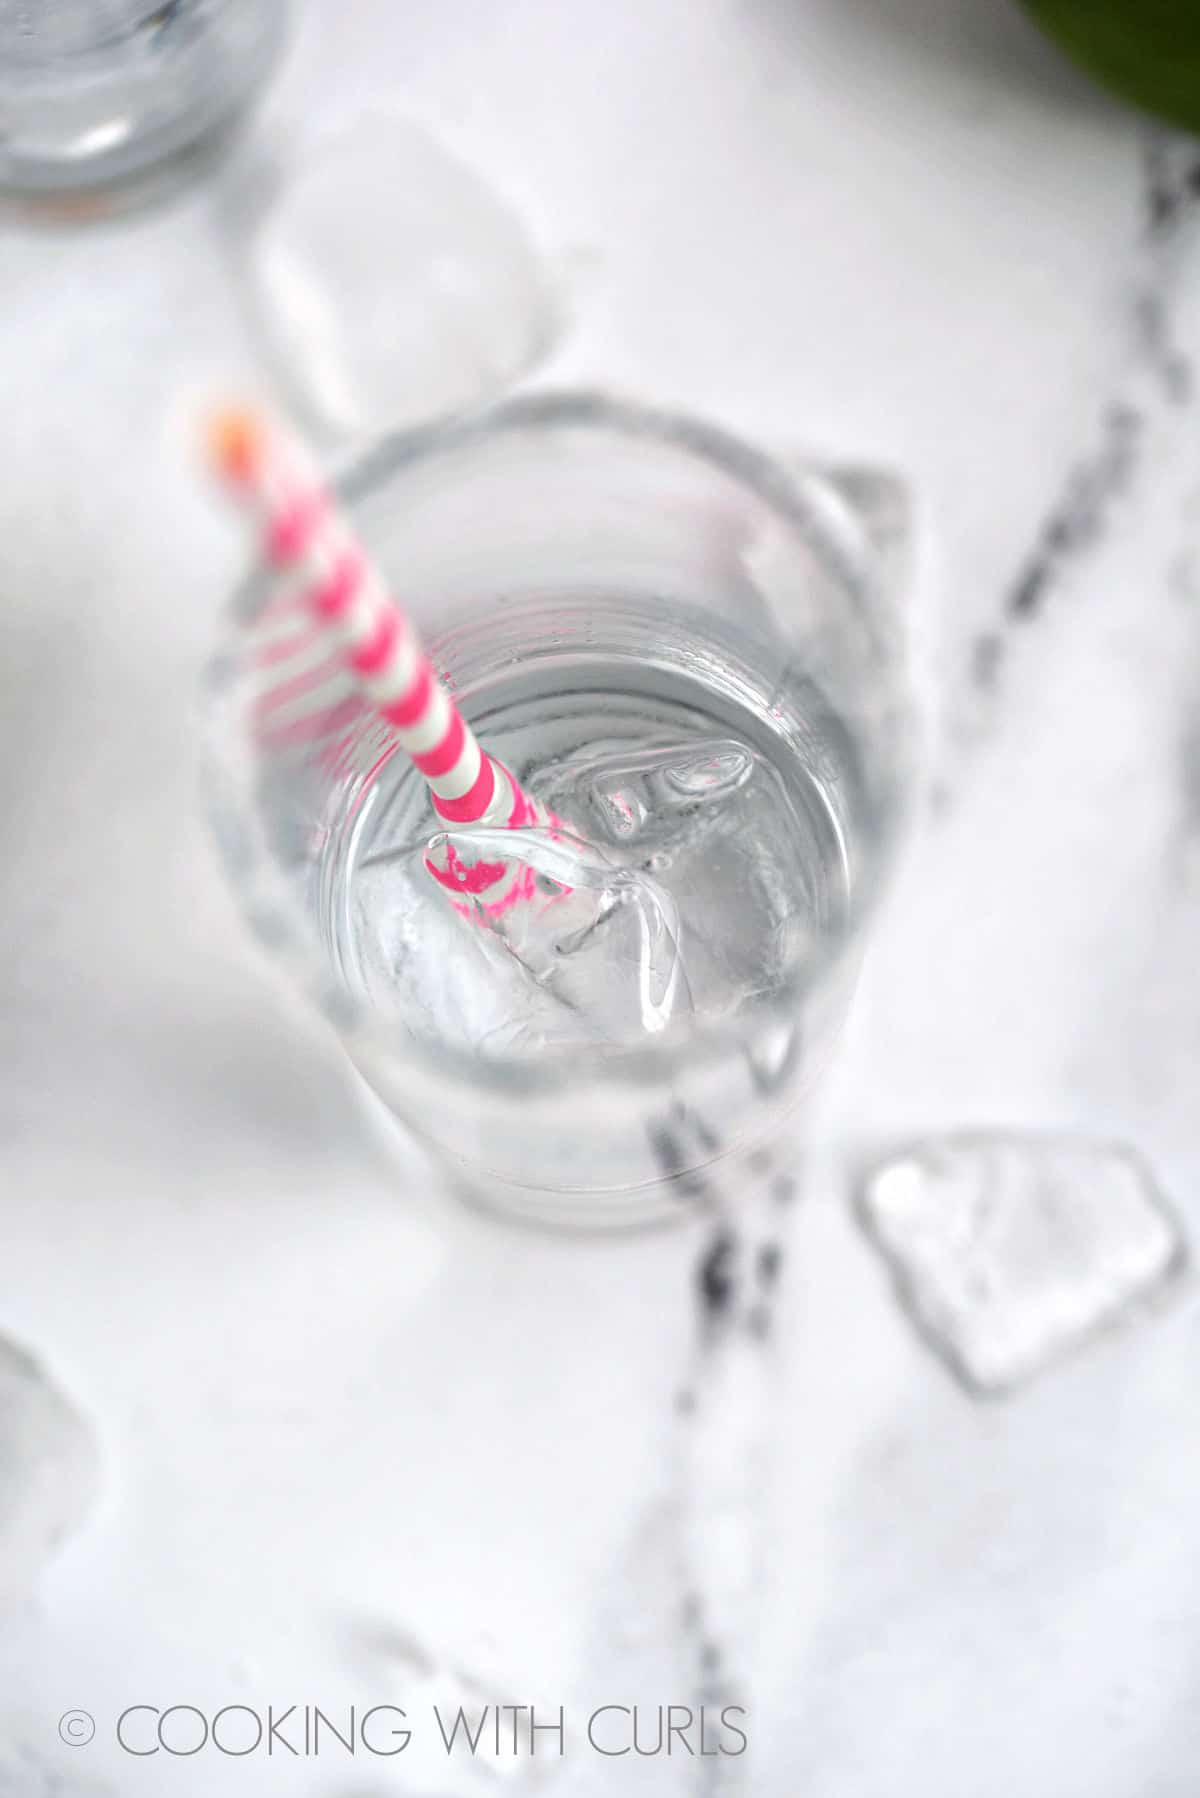 Tequila in a highball glass with ice cubes and pink and white striped straw.